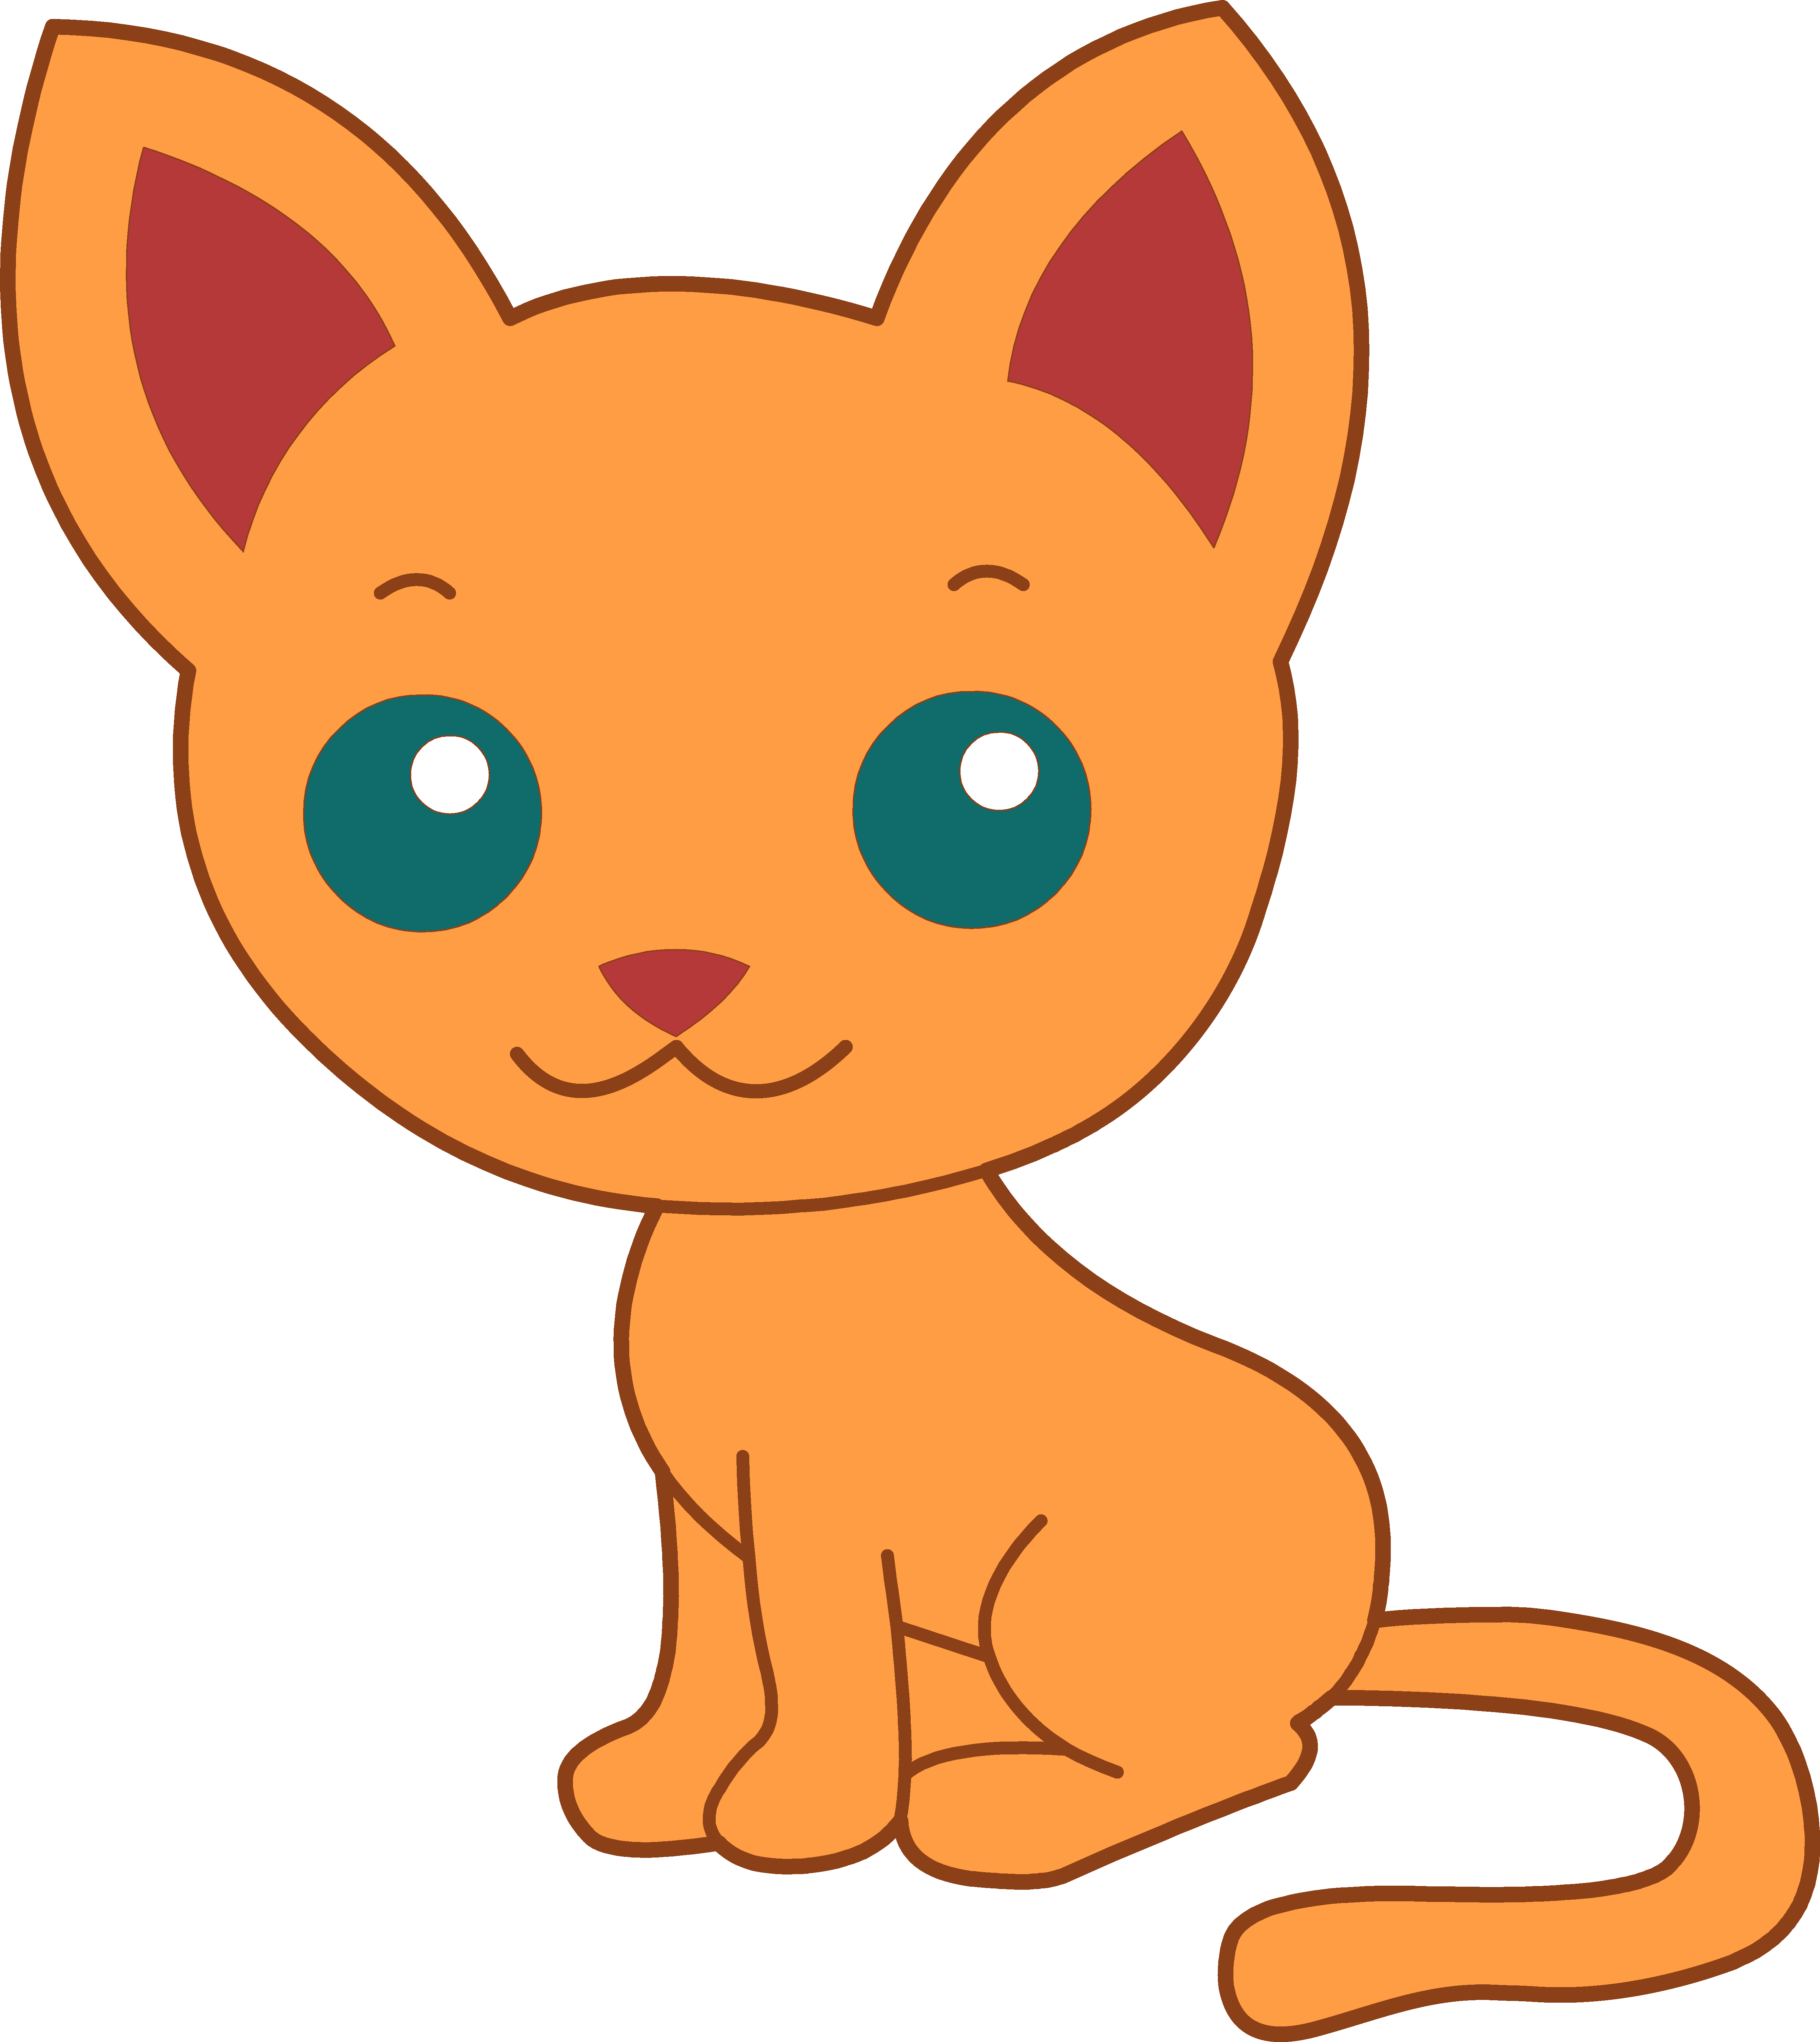 Kittens transparent cartoon. Collection of kitten